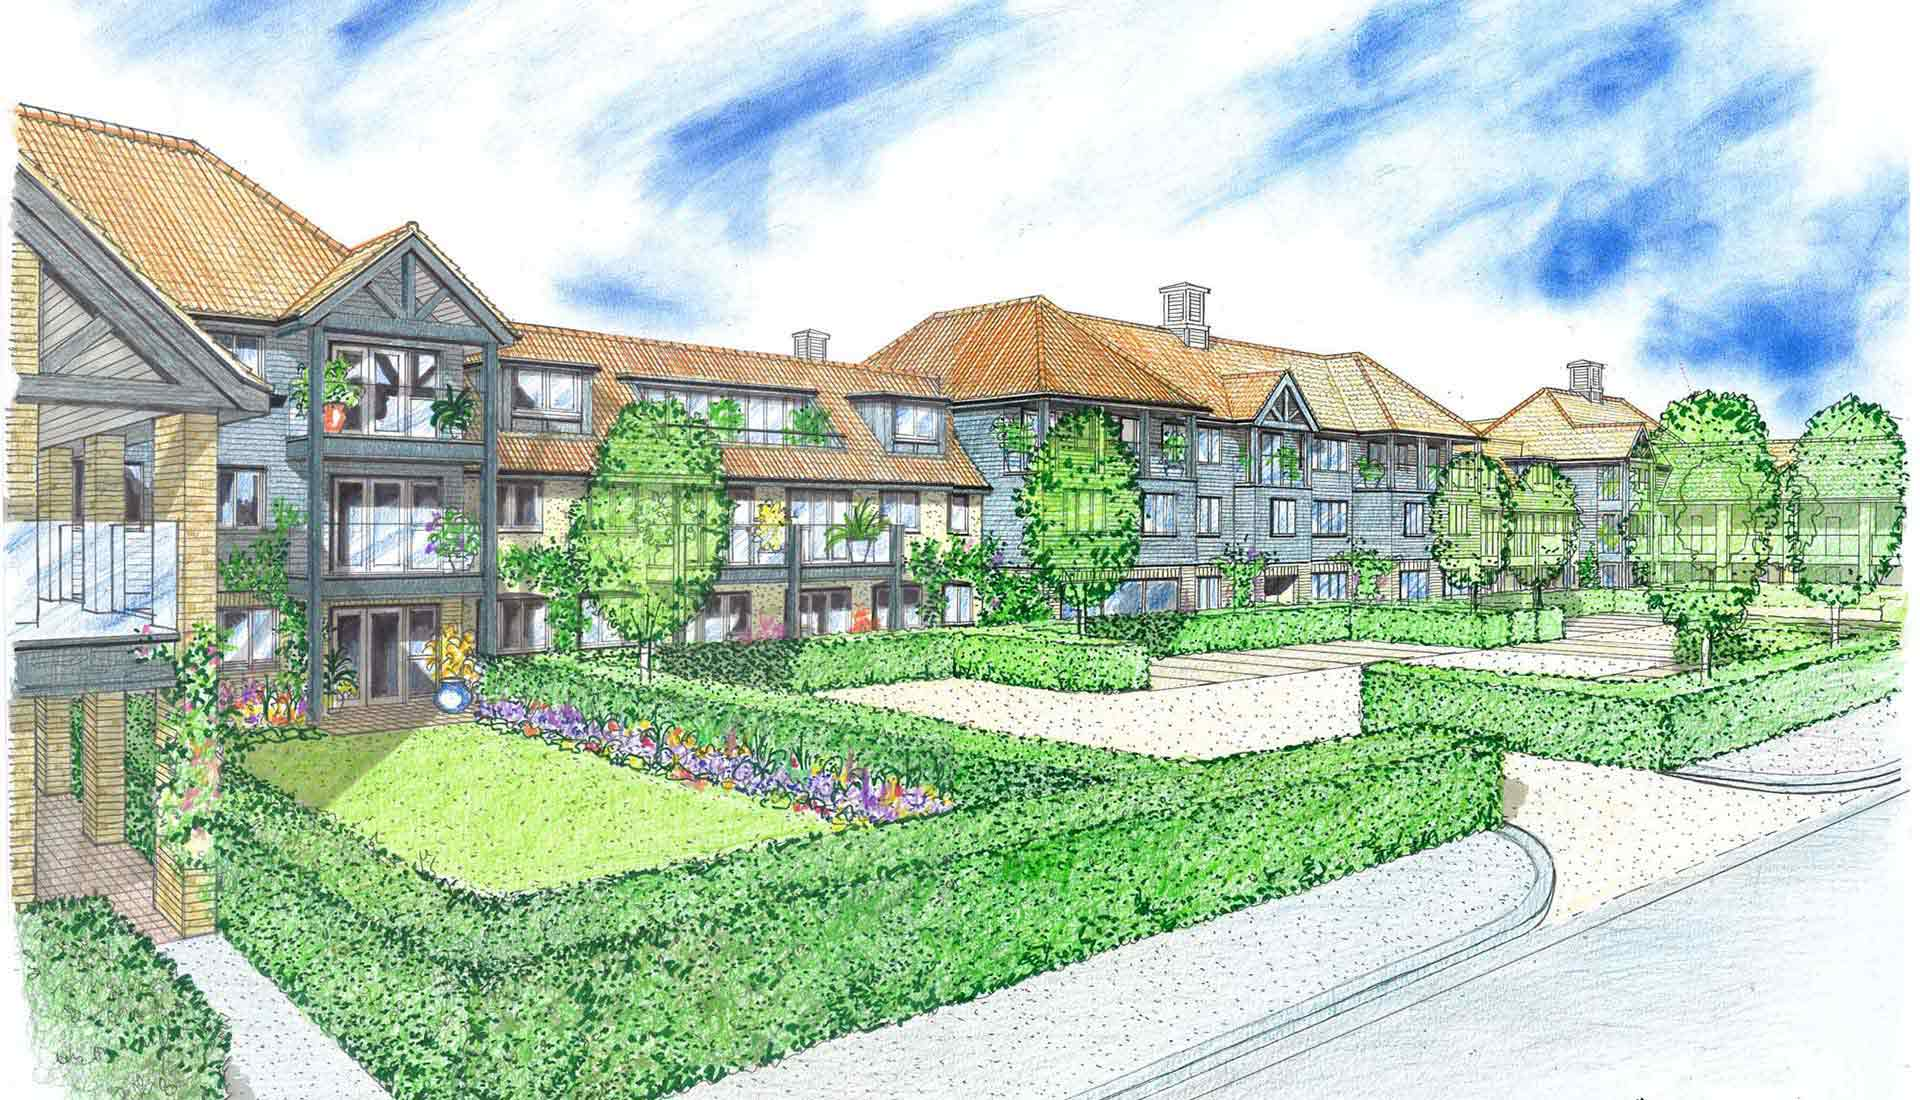 Assisted living homes in Diss